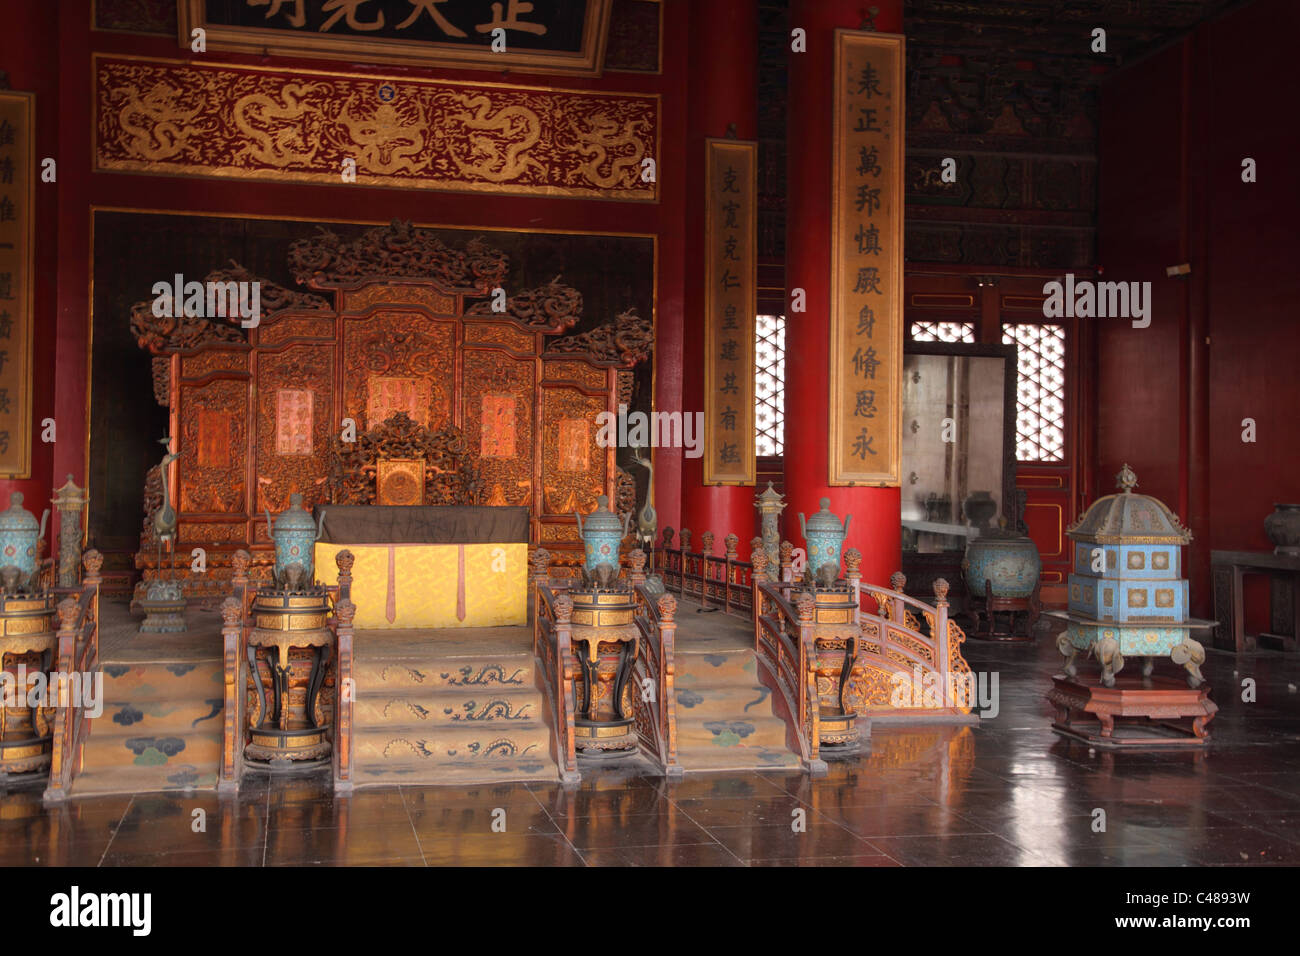 Palace of Heavenly Purity Interior, Forbidden City, Beijing, China - Stock Image